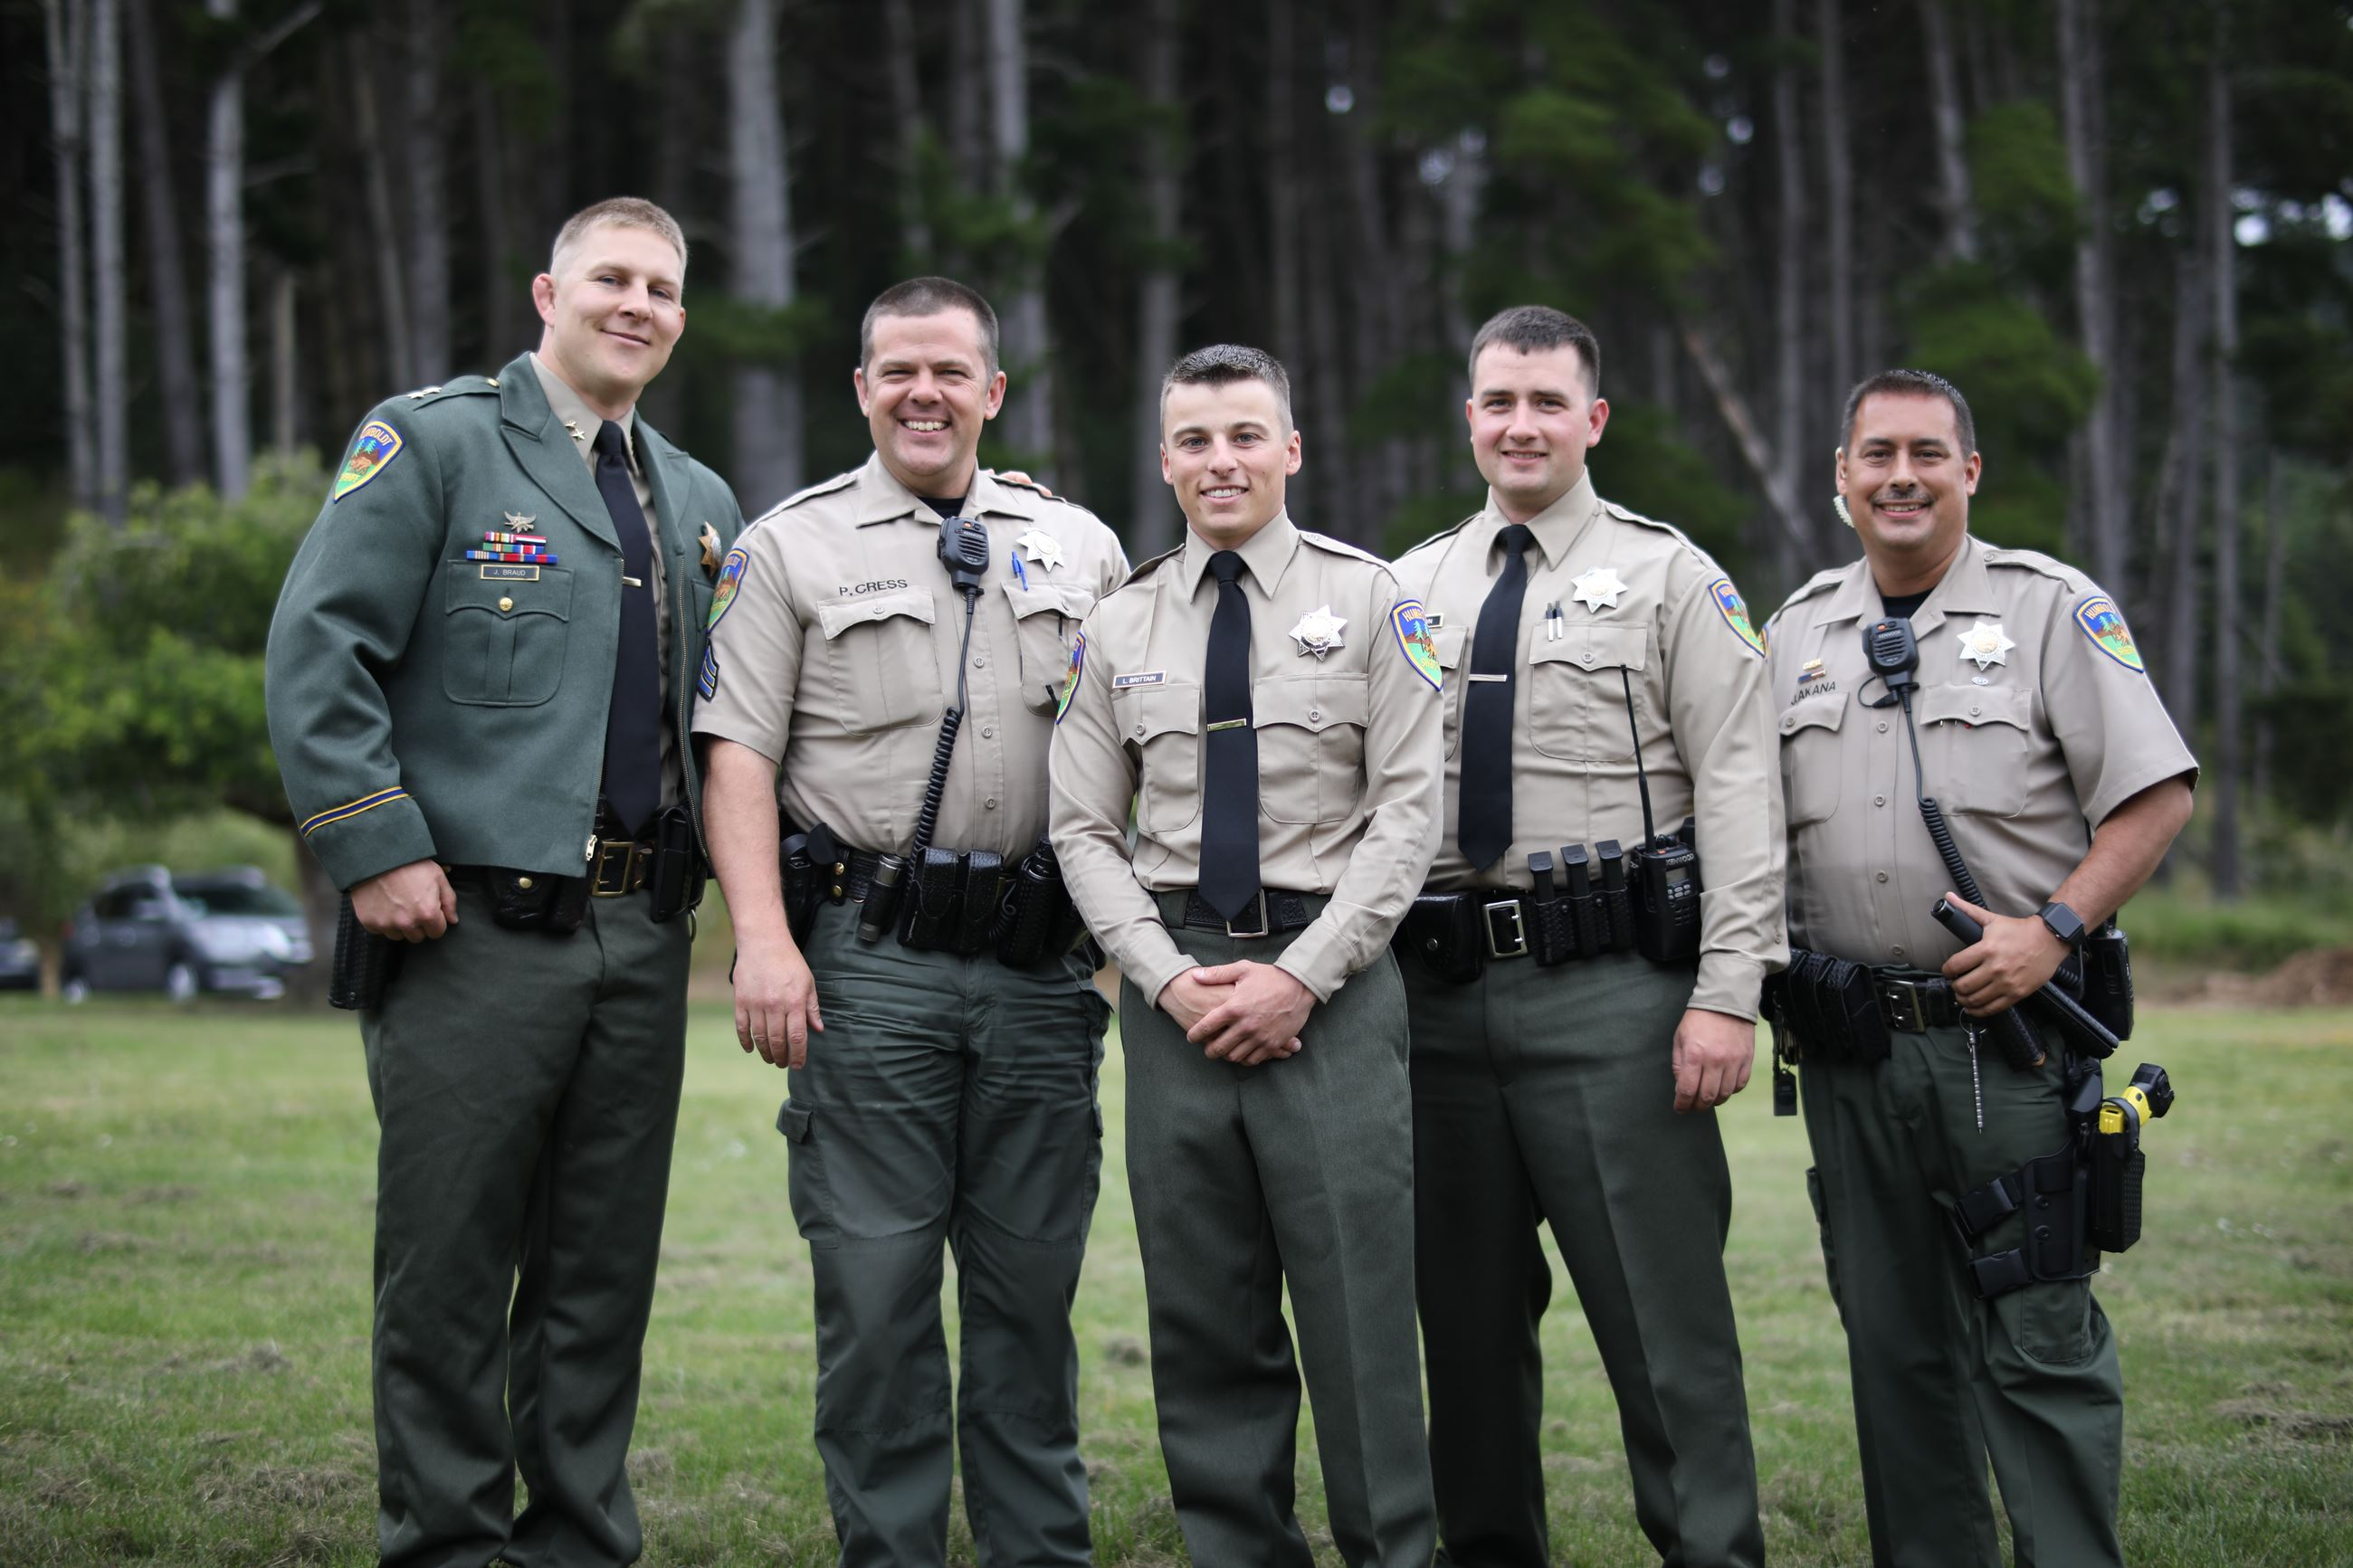 Five deputy sheriffs smiling for a photo in a field